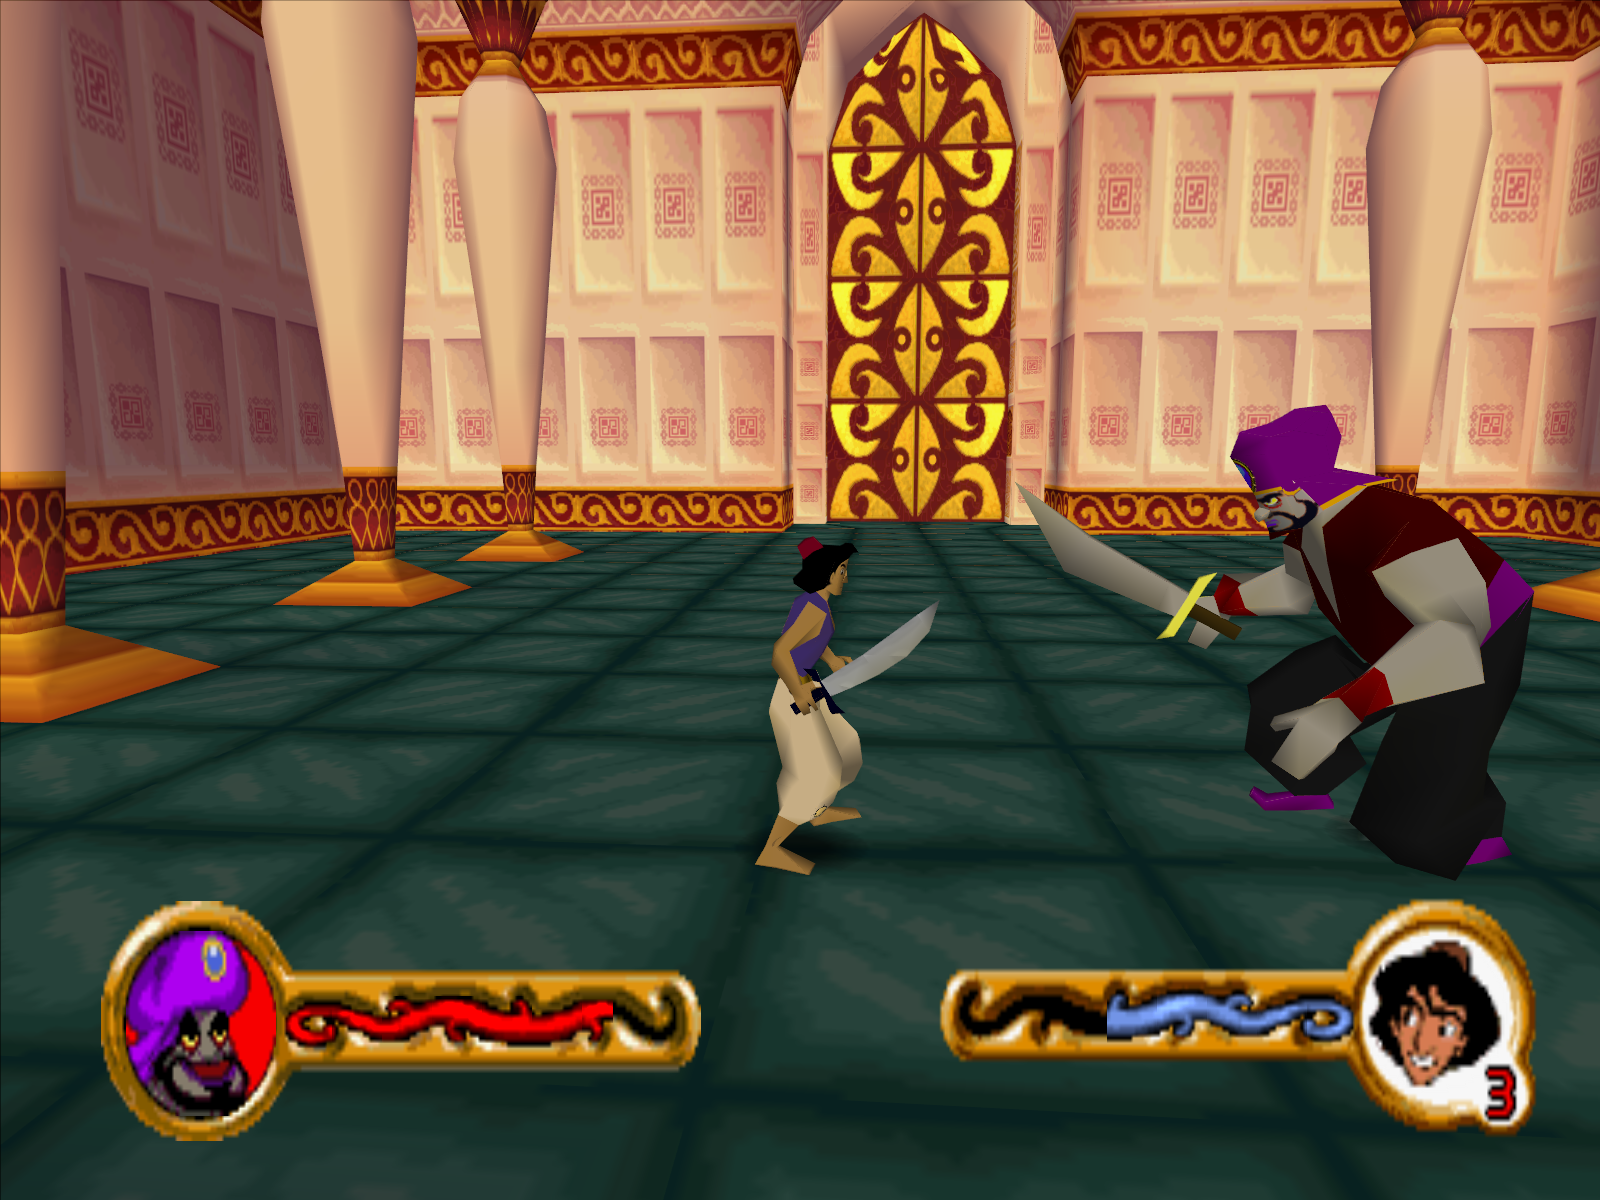 Disney's Aladdin in Nasira's Revenge Windows The duel with Razoul